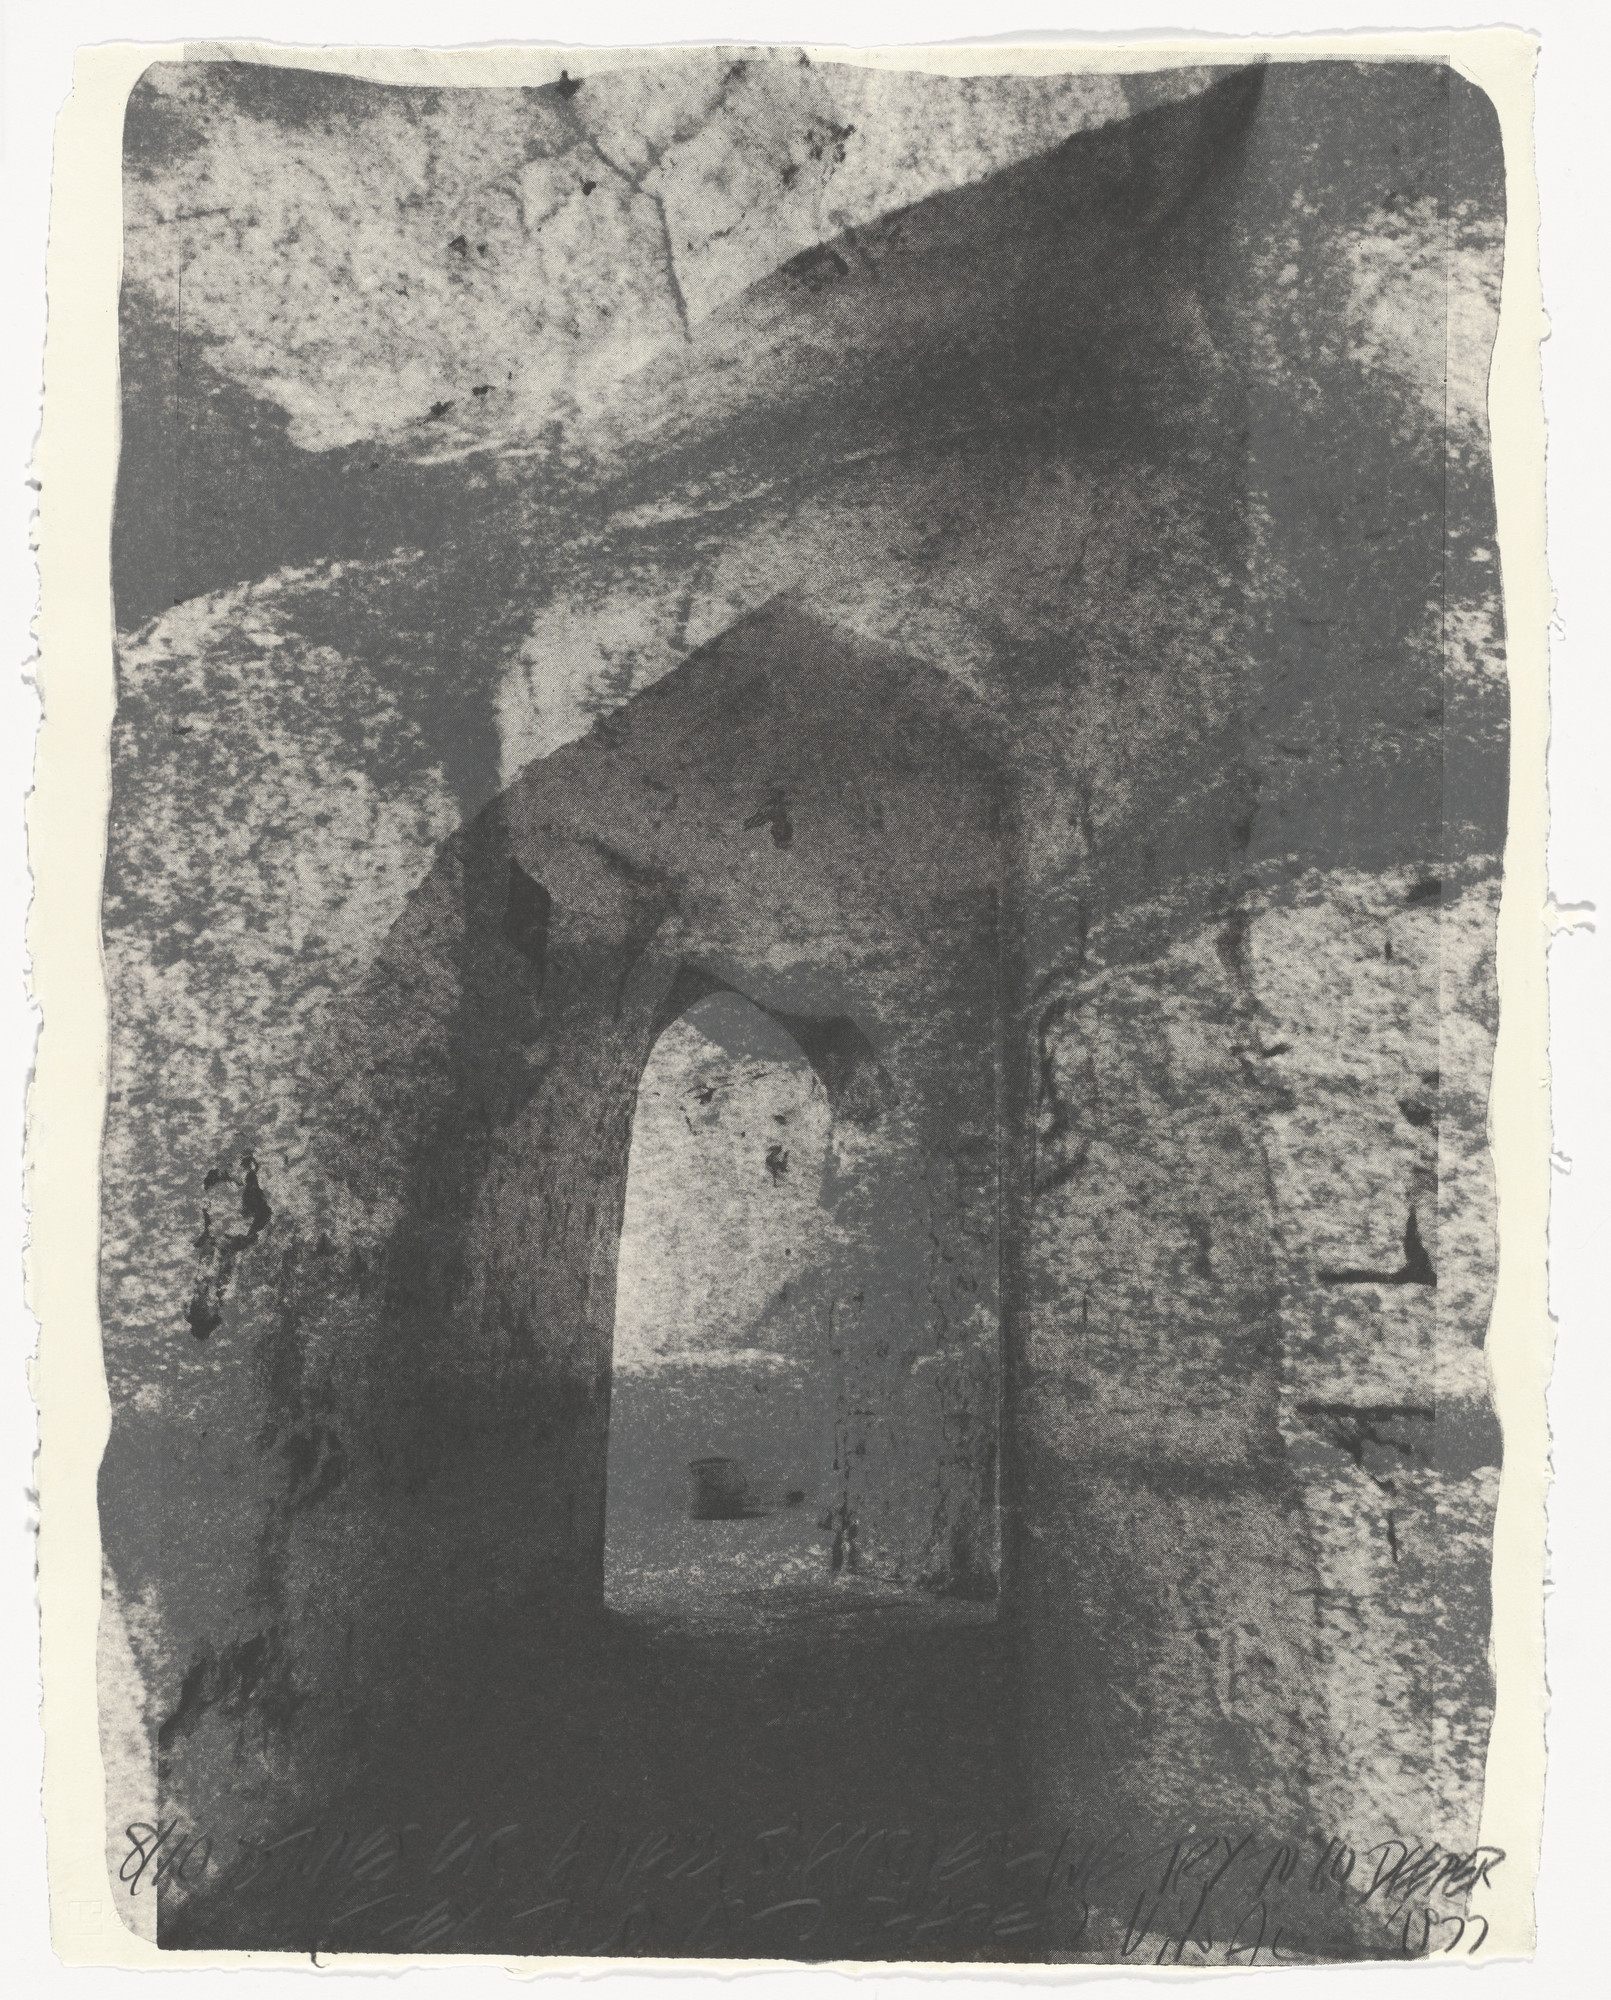 Vito Acconci. Stones for a Wall (5) from Stones for a Wall. 1977